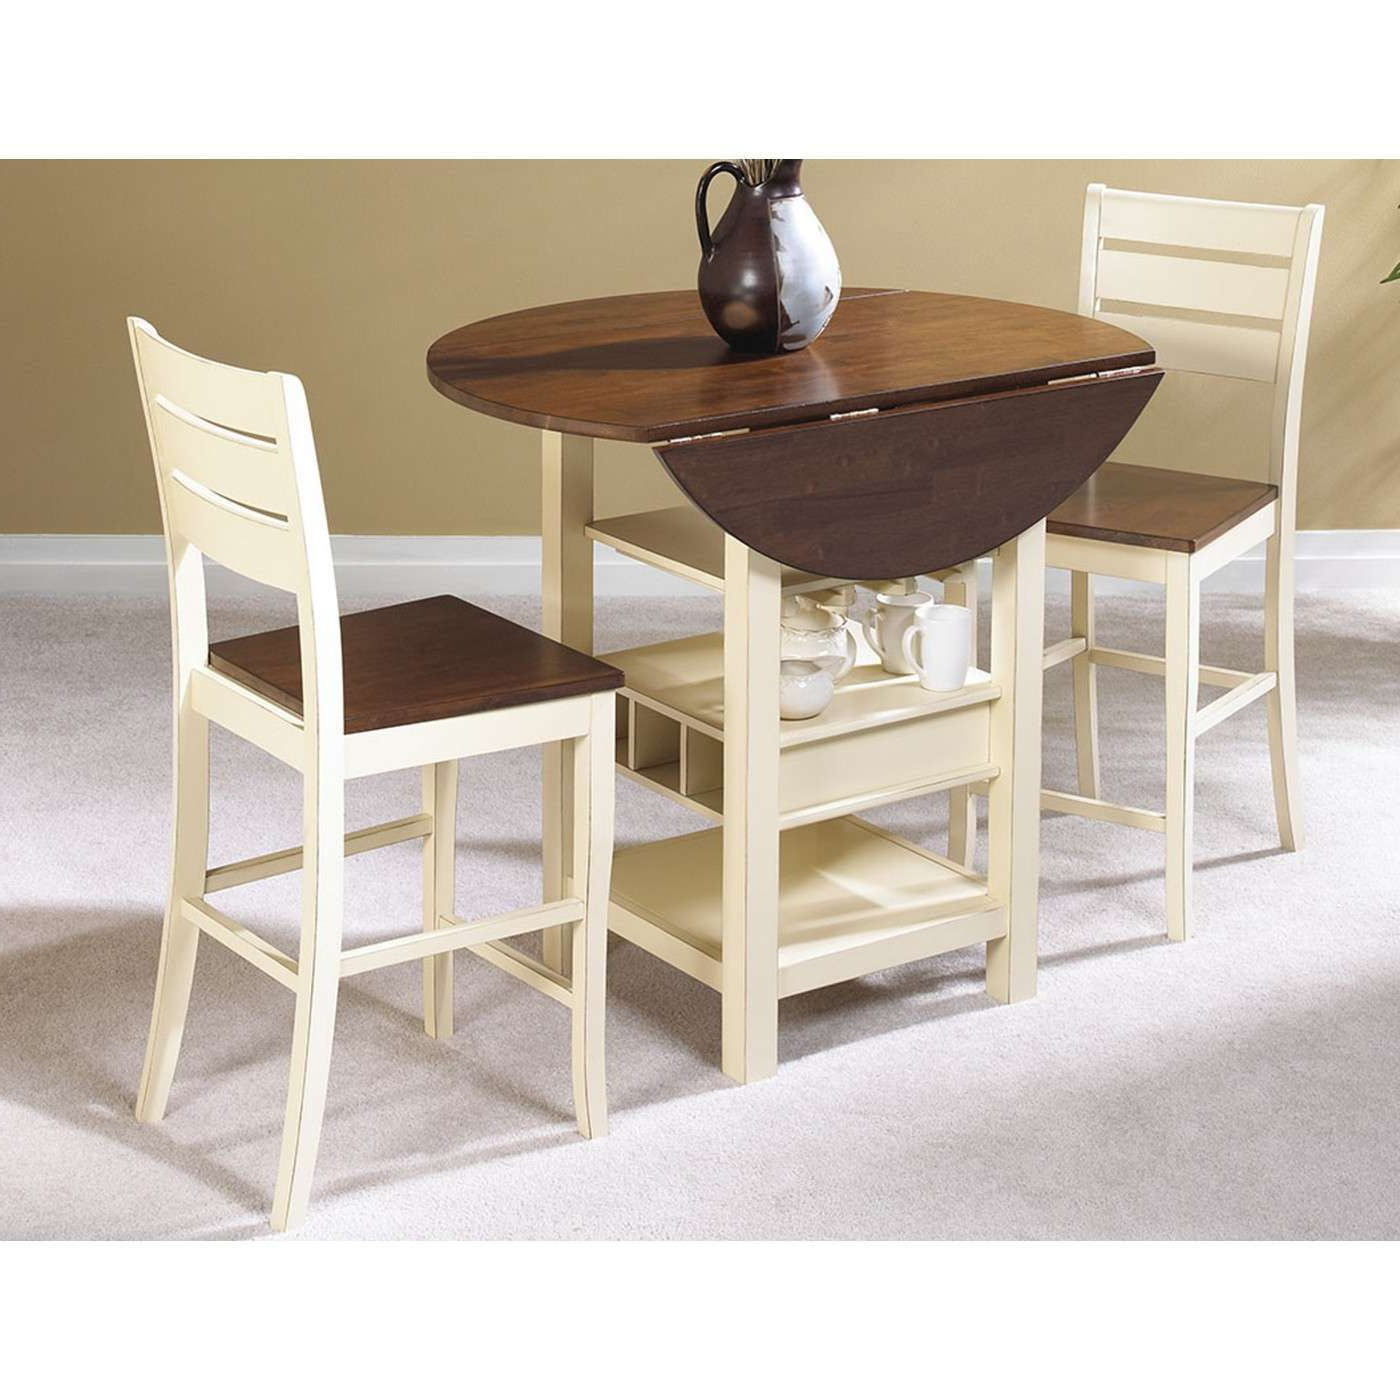 Pub Intended For Transitional 4 Seating Double Drop Leaf Casual Dining Tables (View 13 of 25)